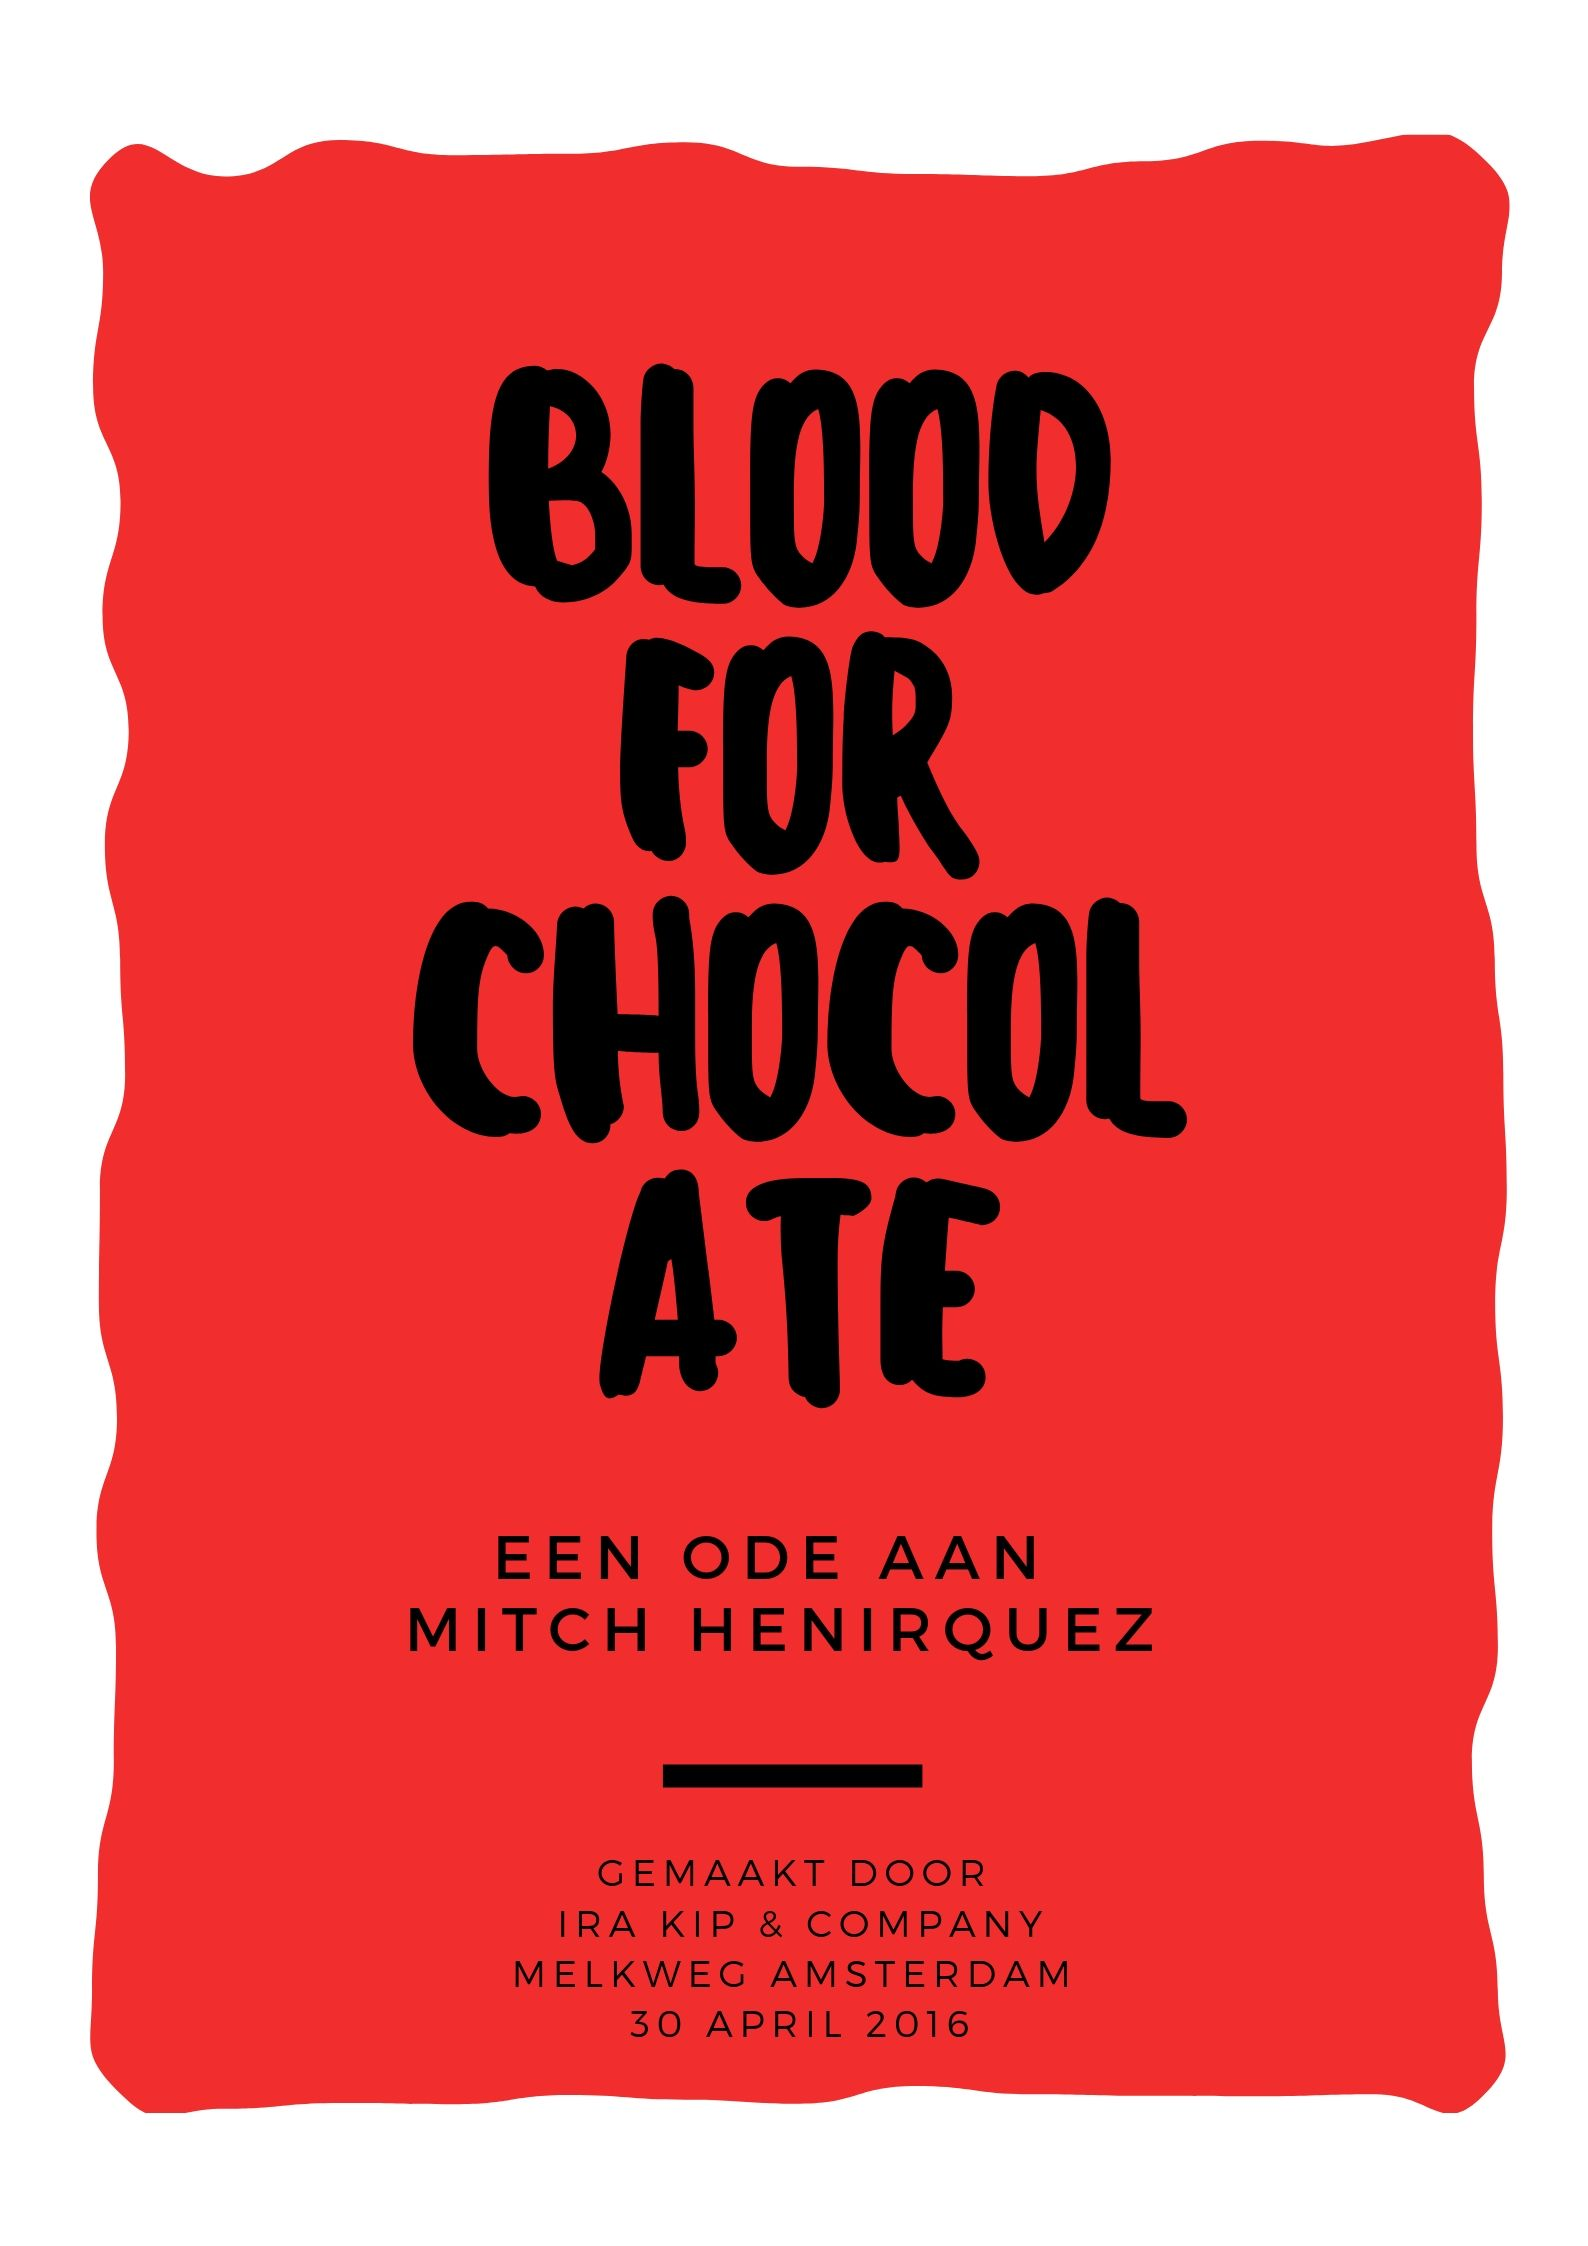 BLOOD FOR CHOCOLATE